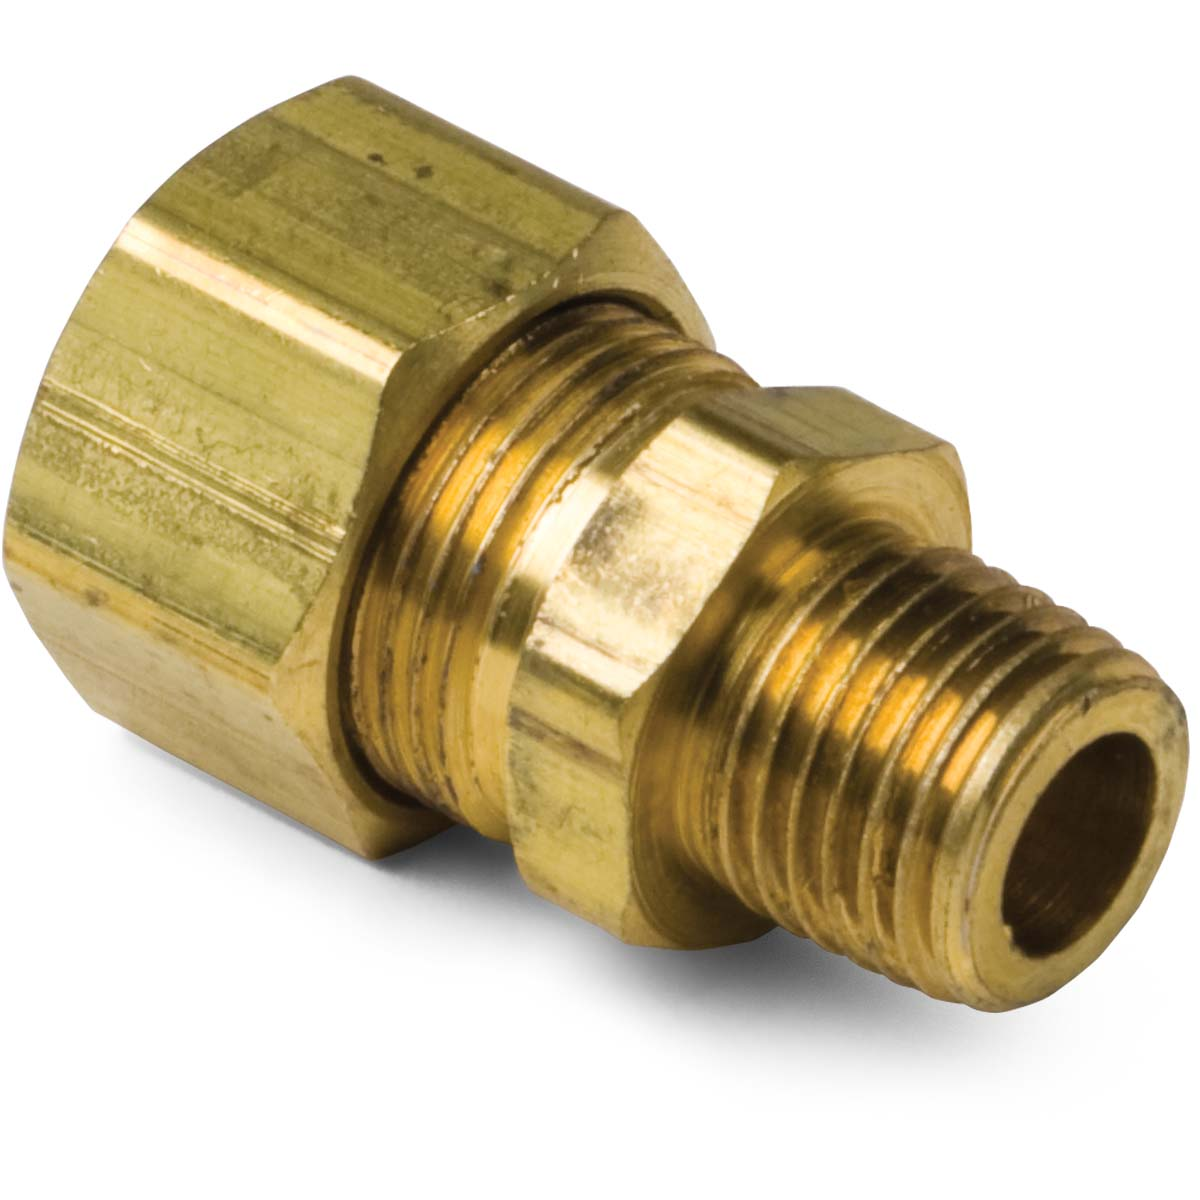 Selfalign brass male connector kimball midwest